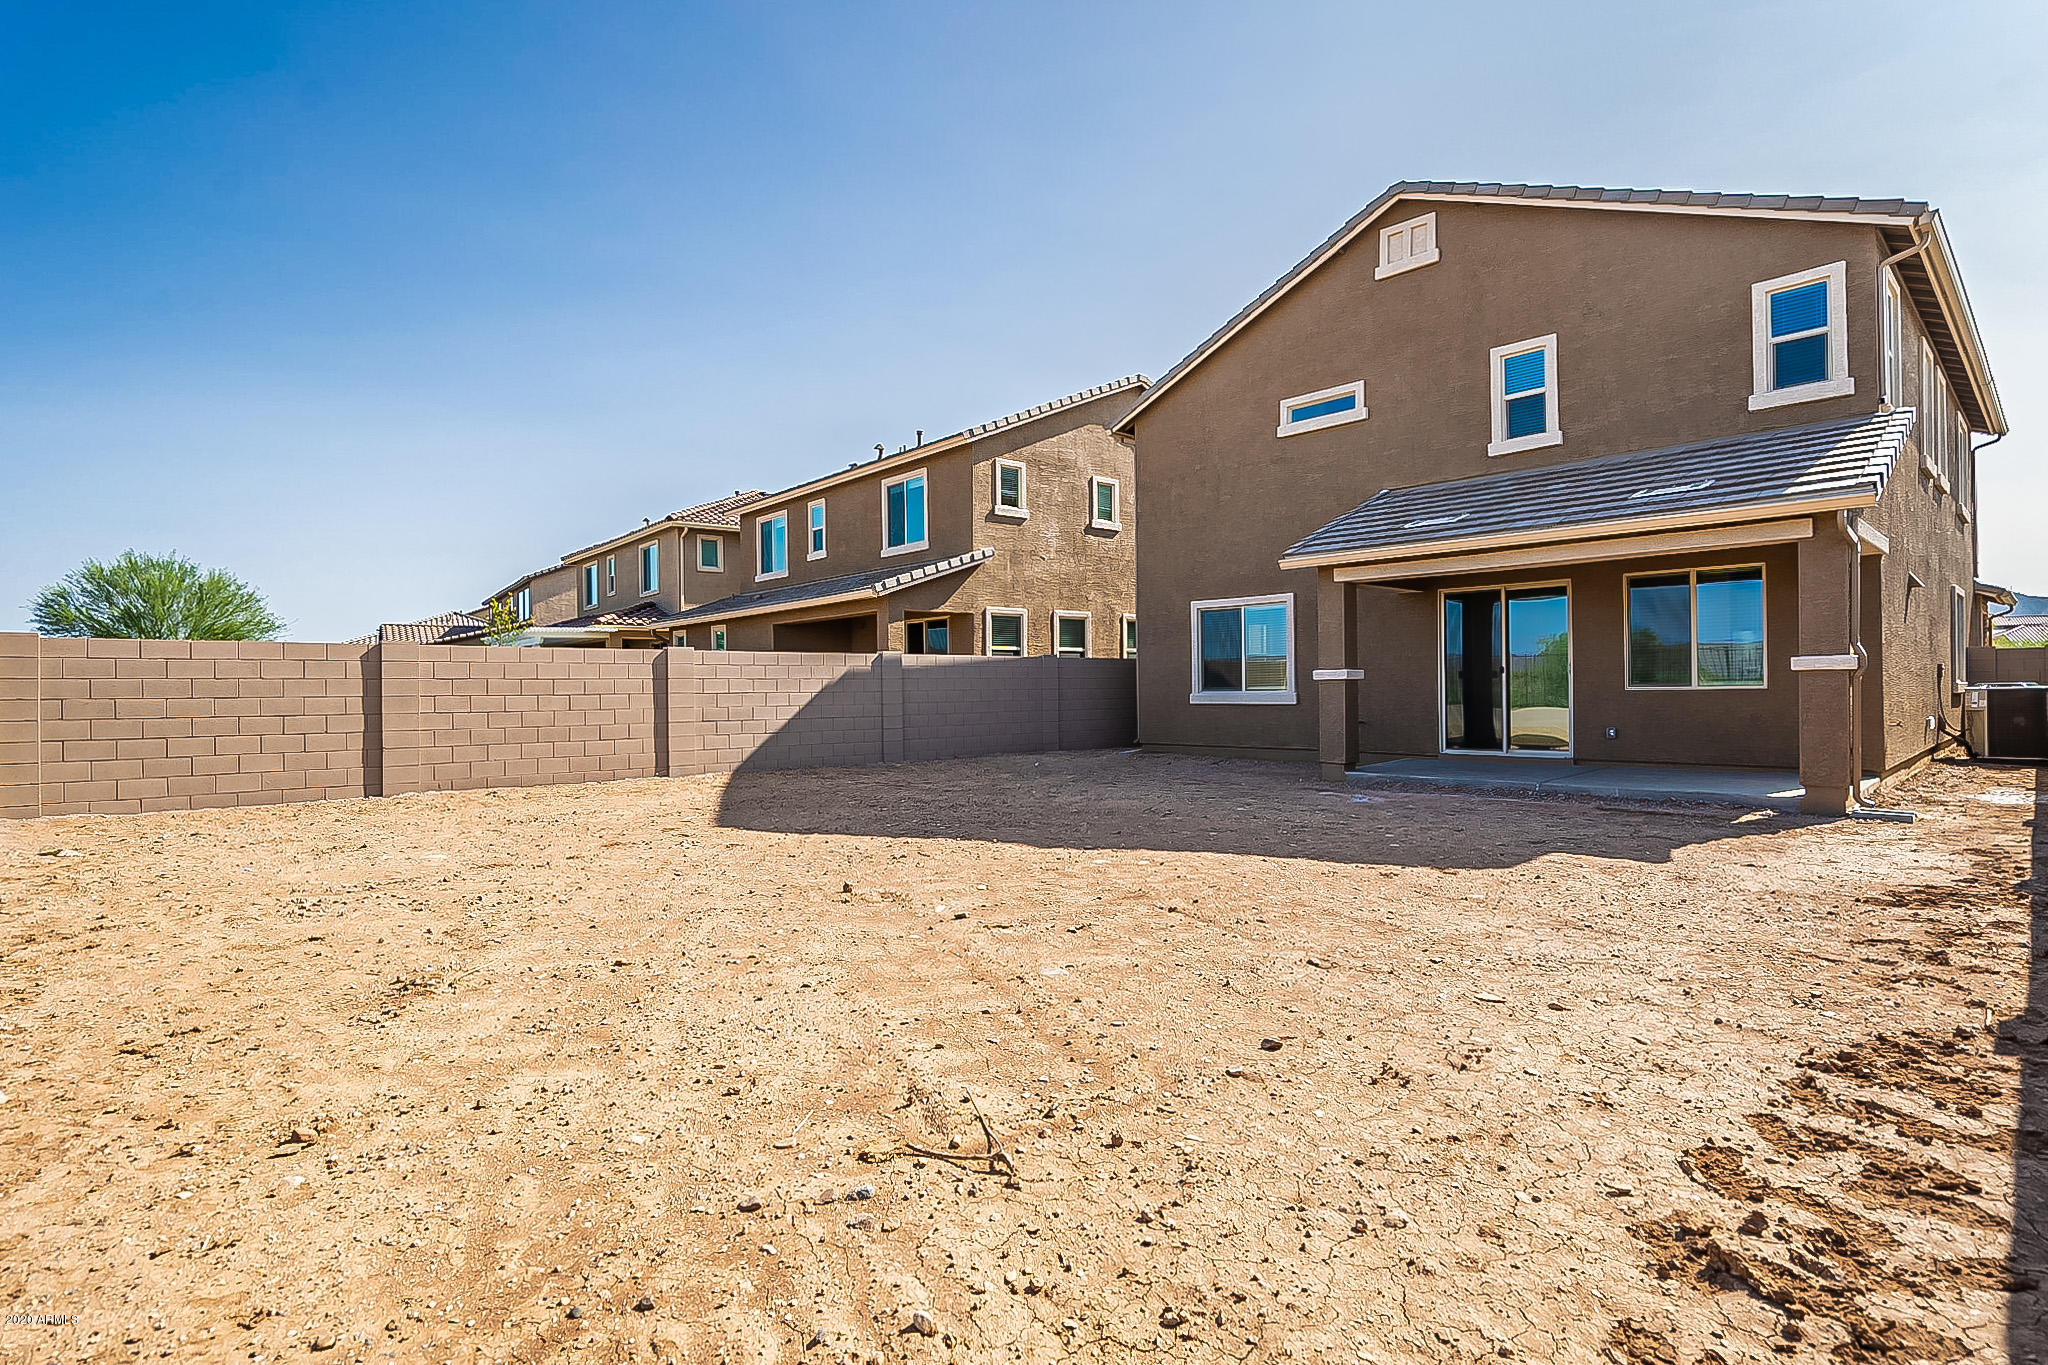 MLS 6127934 44512 N SONORAN ARROYO Lane, New River, AZ 85087 New River AZ Newly Built